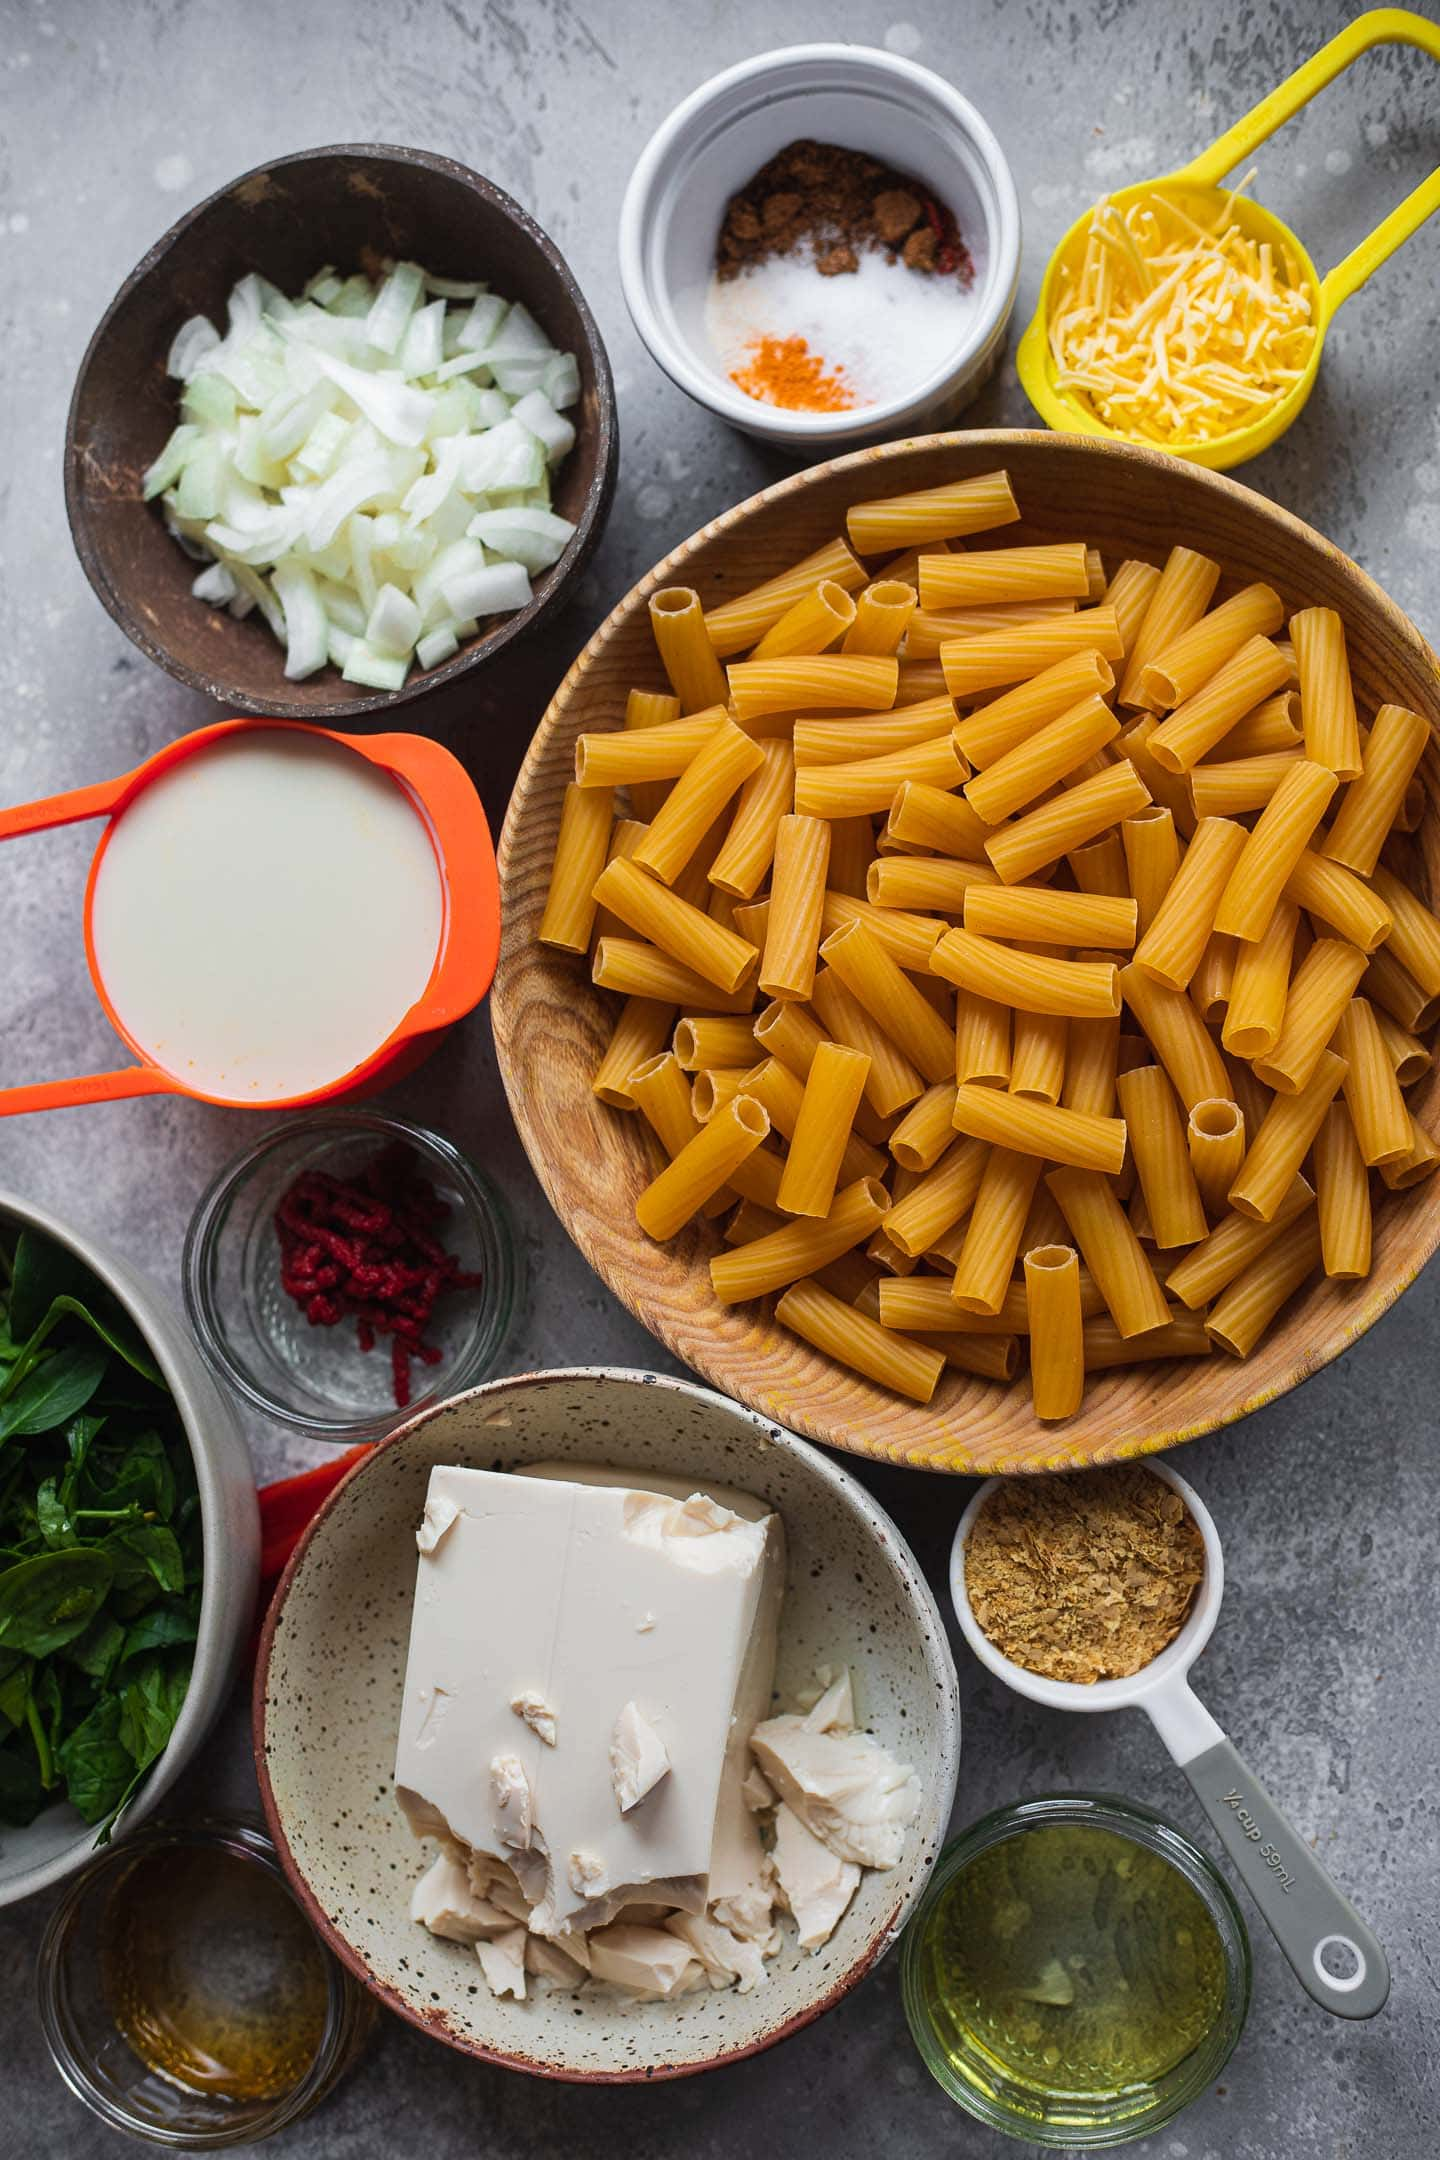 Ingredients for butternut squash pasta